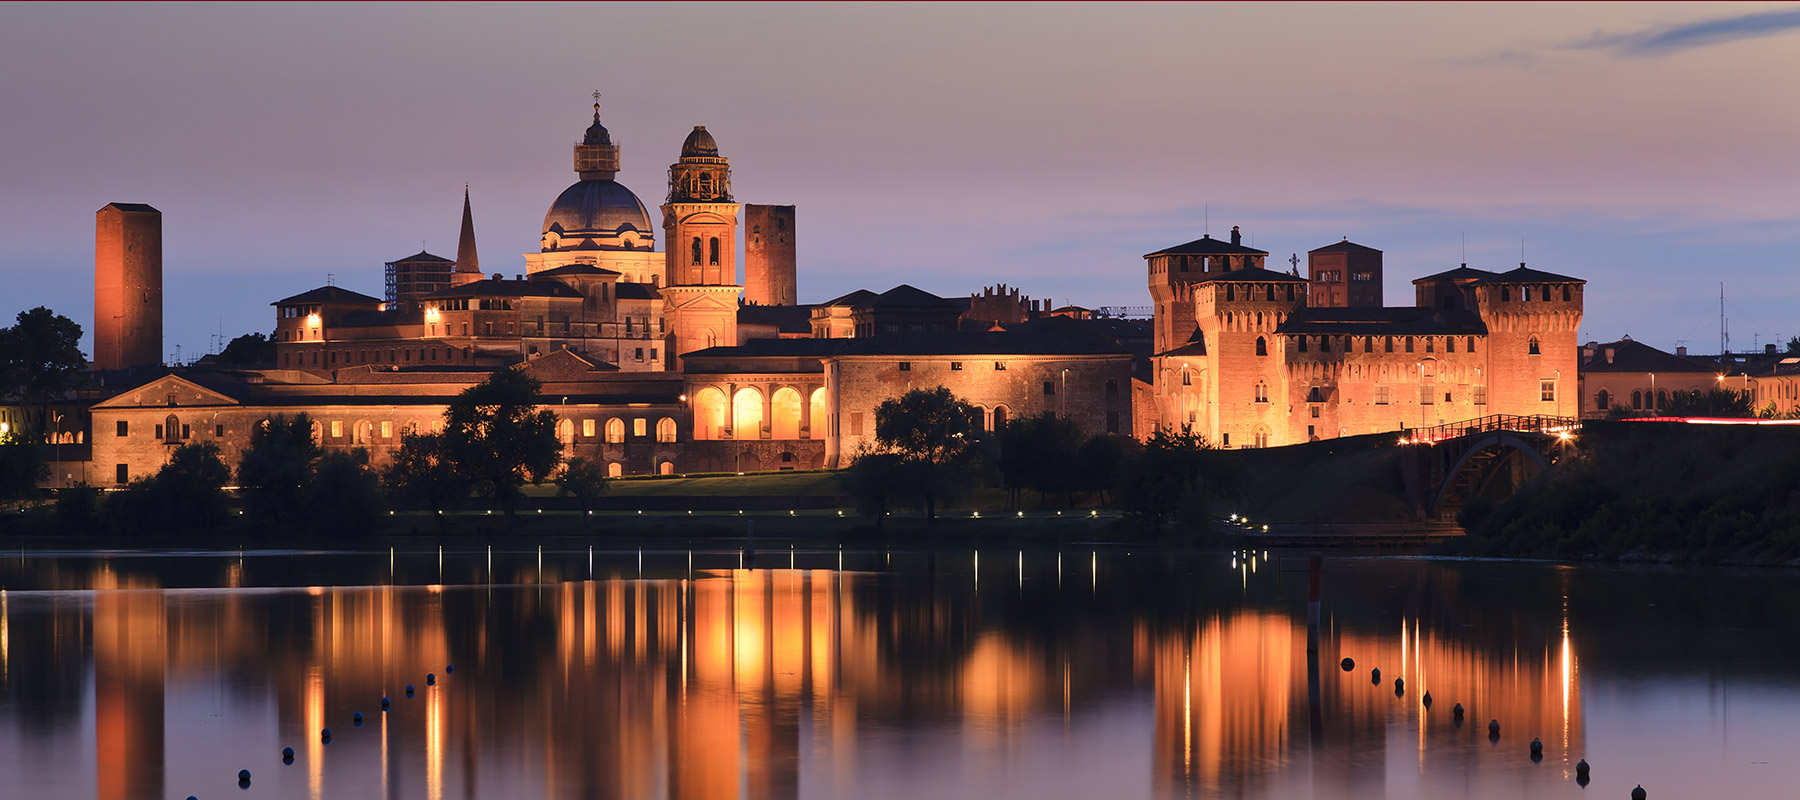 Mantova Mantua by night.jpg